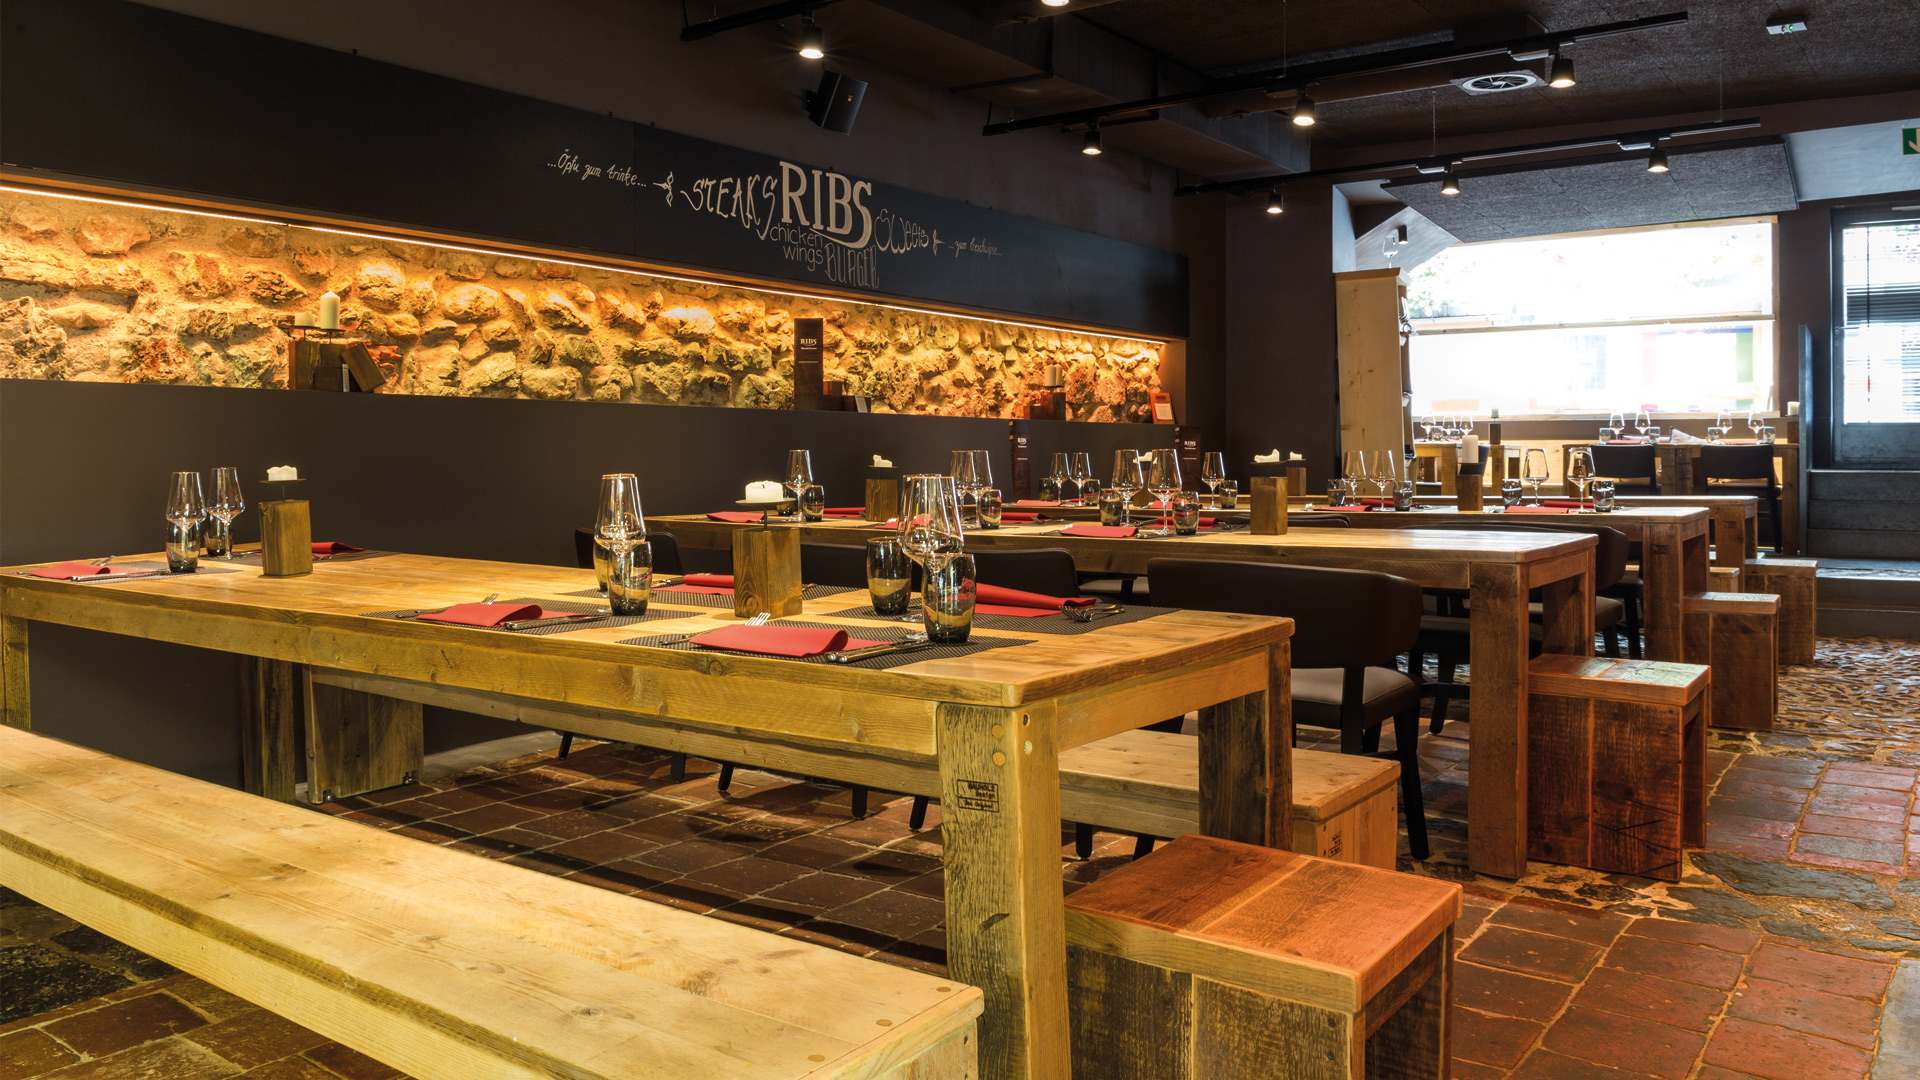 ribs-steakhouse-tische